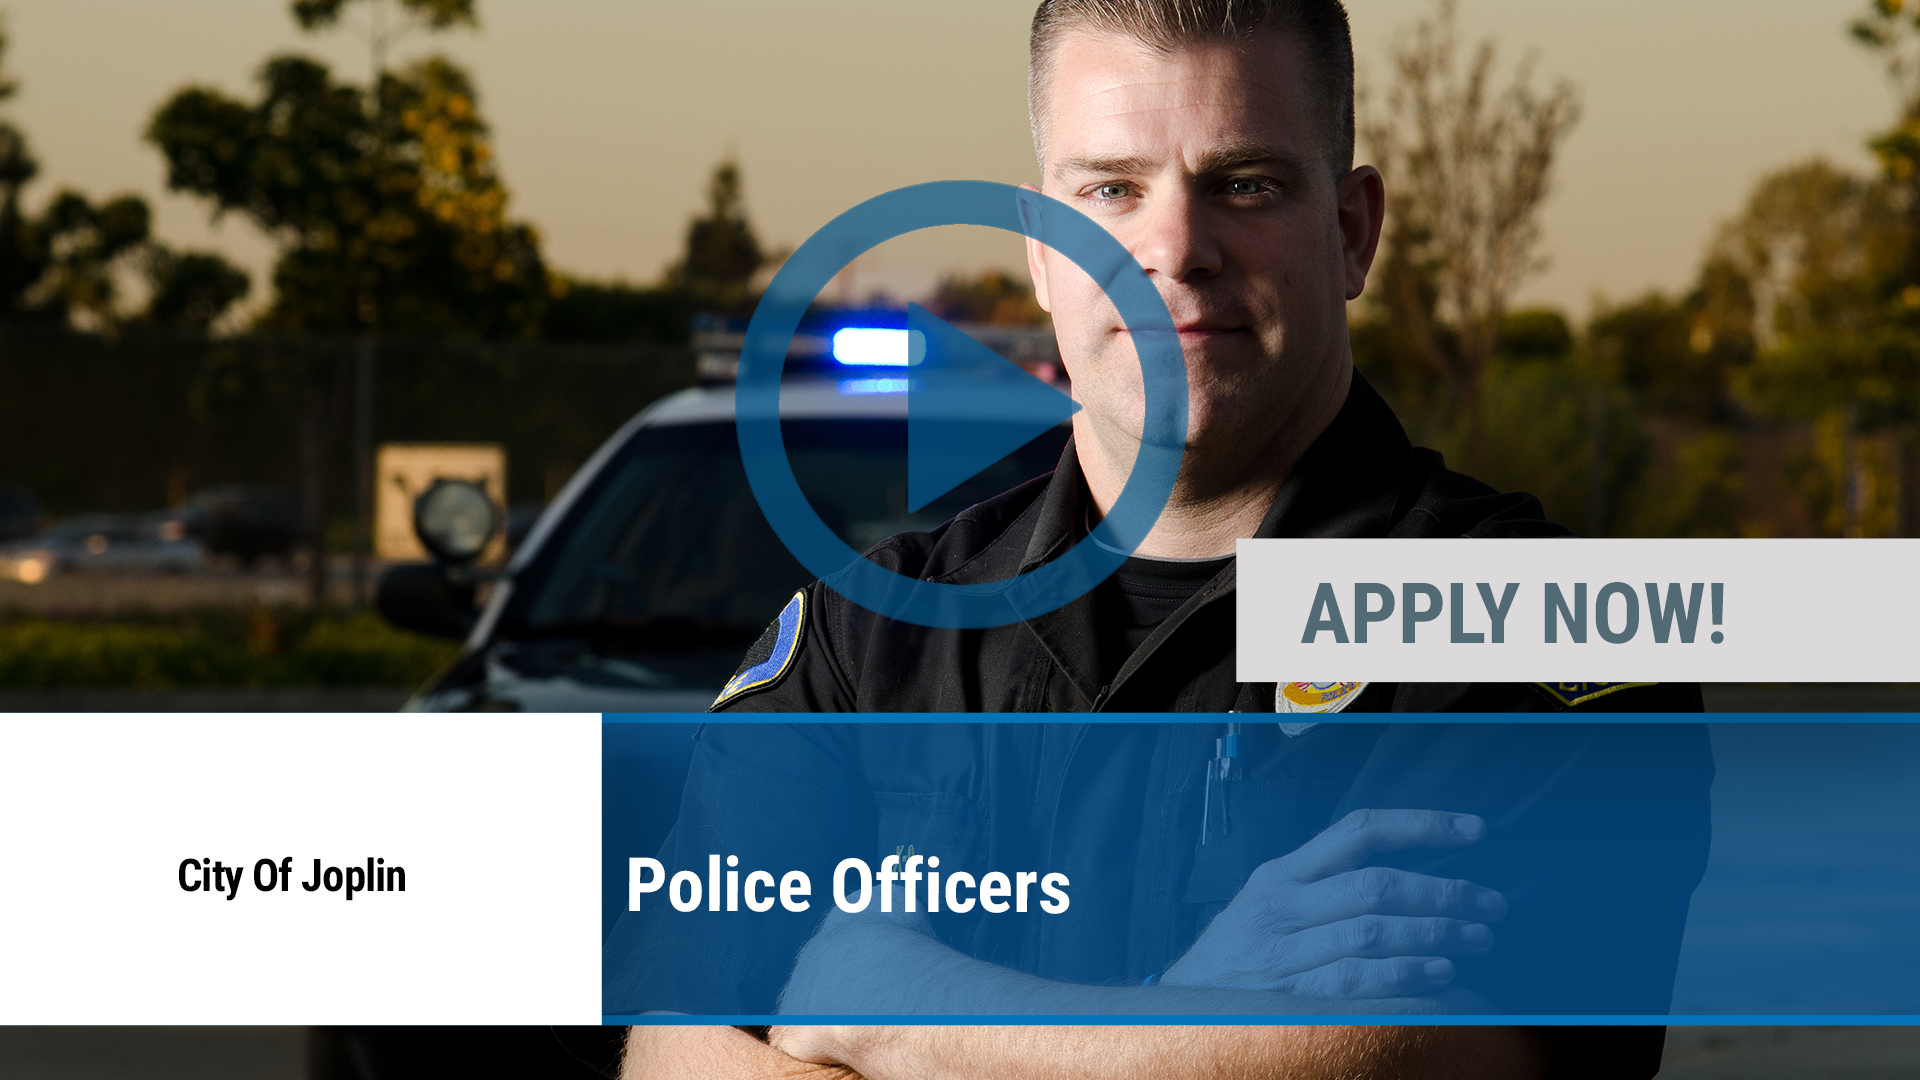 Watch our careers video for available job opening Police Officers in Joplin, MO